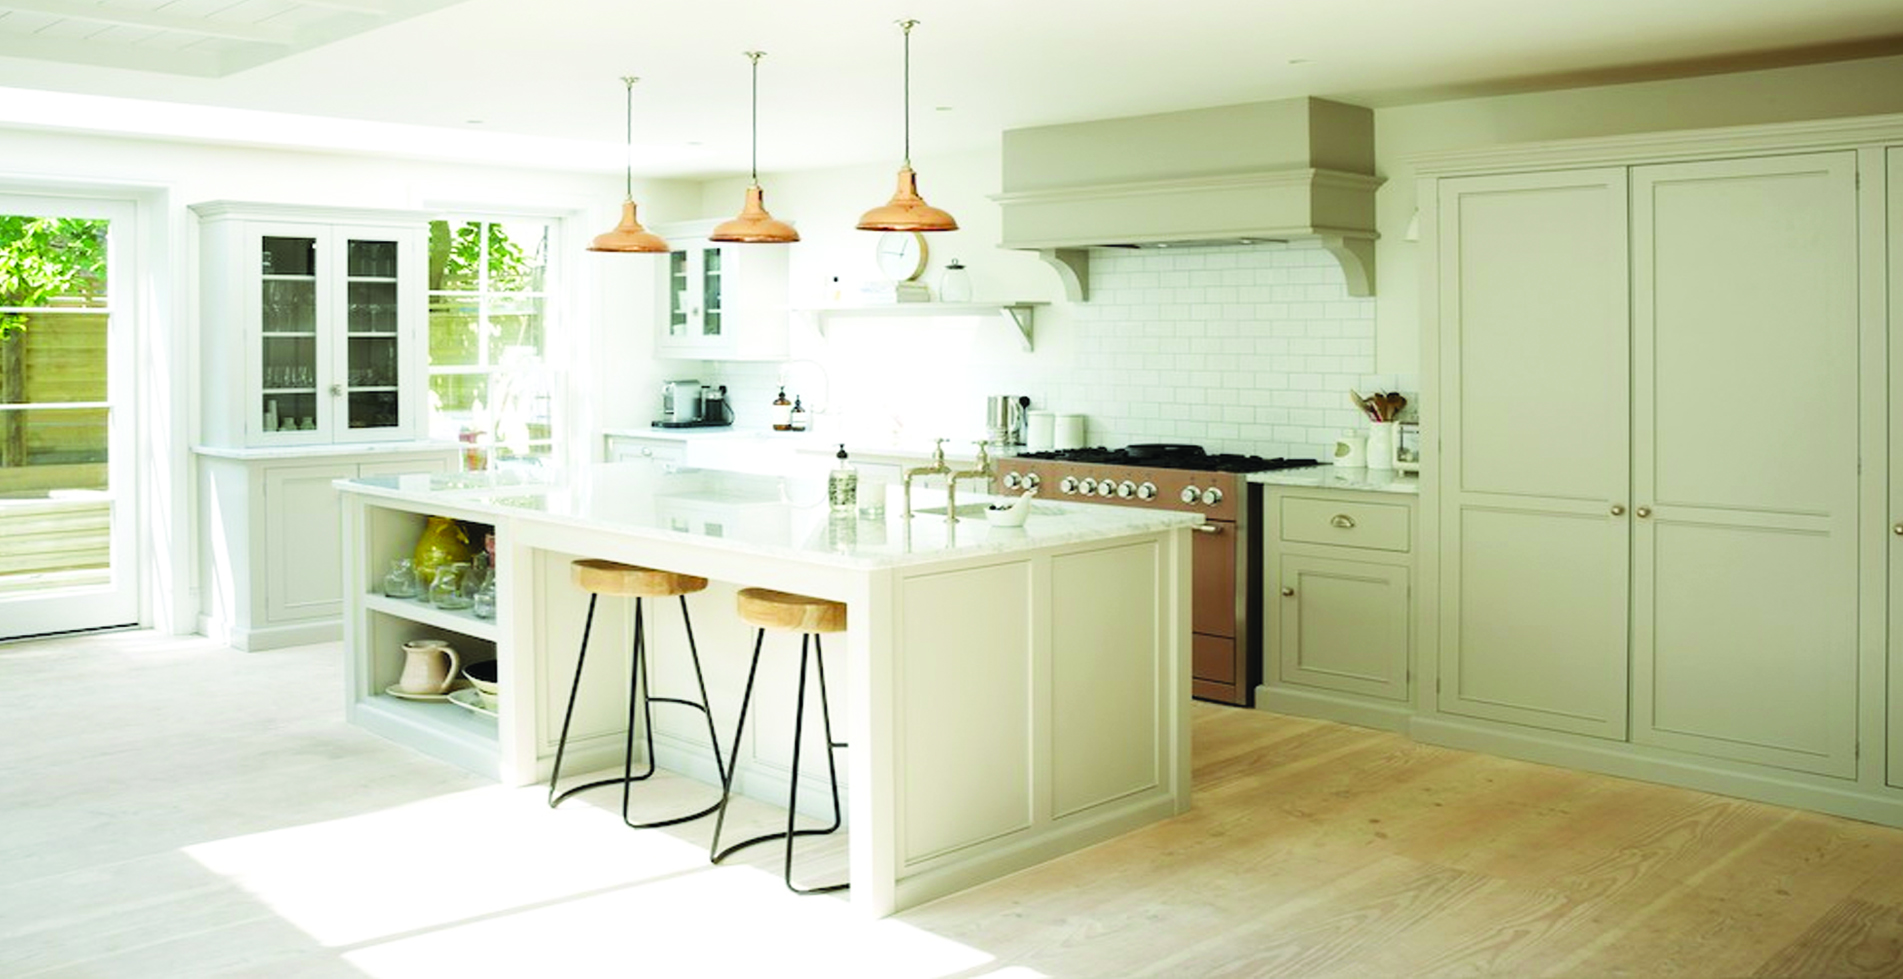 Kitchens Leicester, Fitted Bespoke Kitchens & Bedrooms - RND Interiors